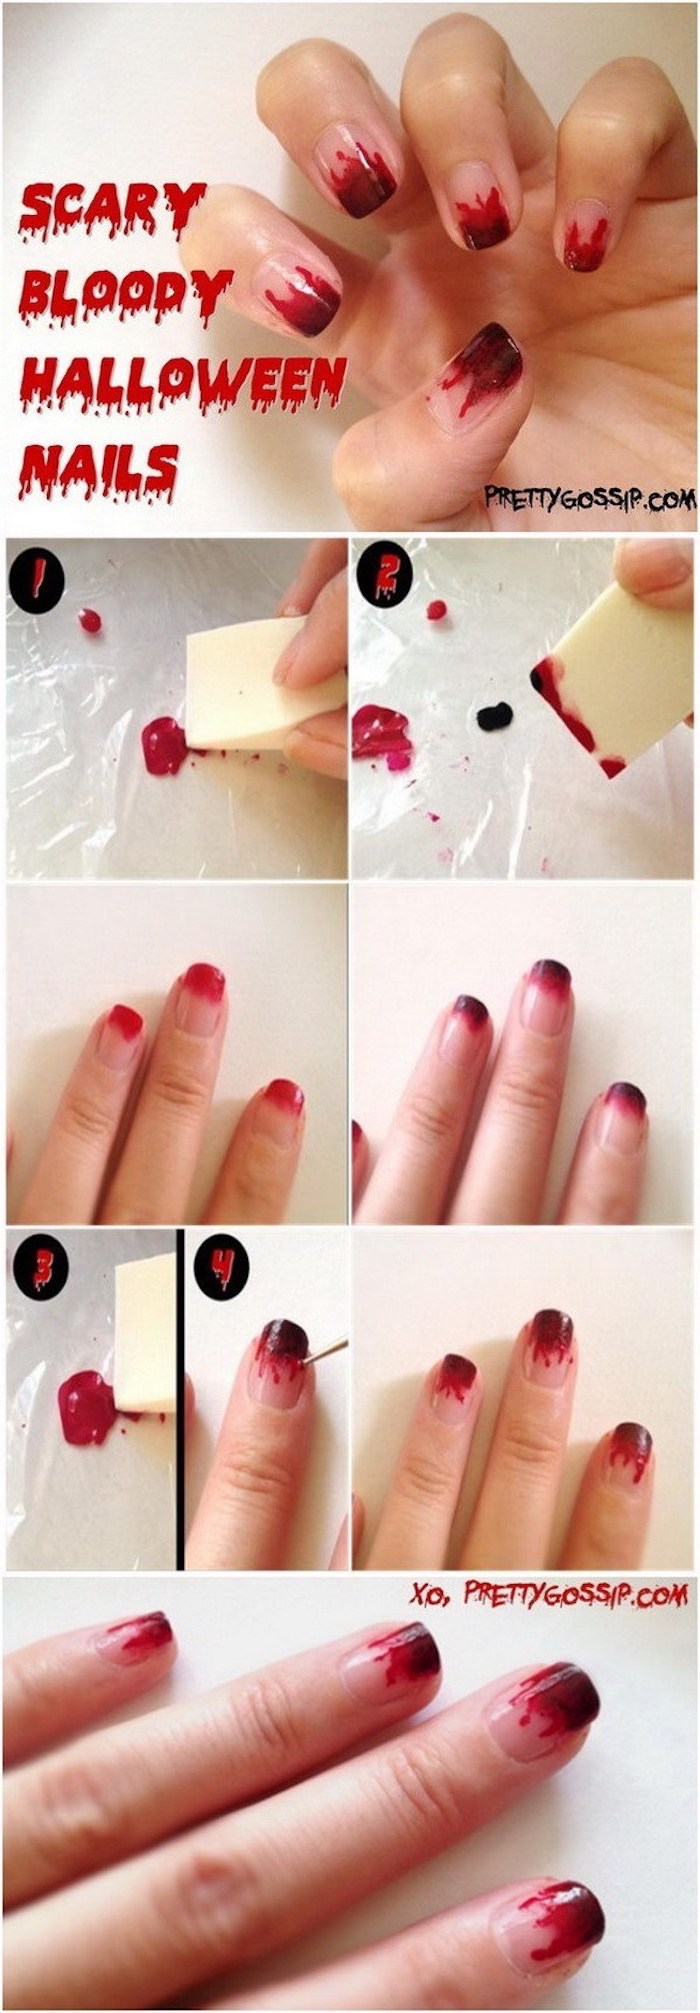 scary bloody halloween nails, step by step, diy tutorial, candy corn nails, red nail polish